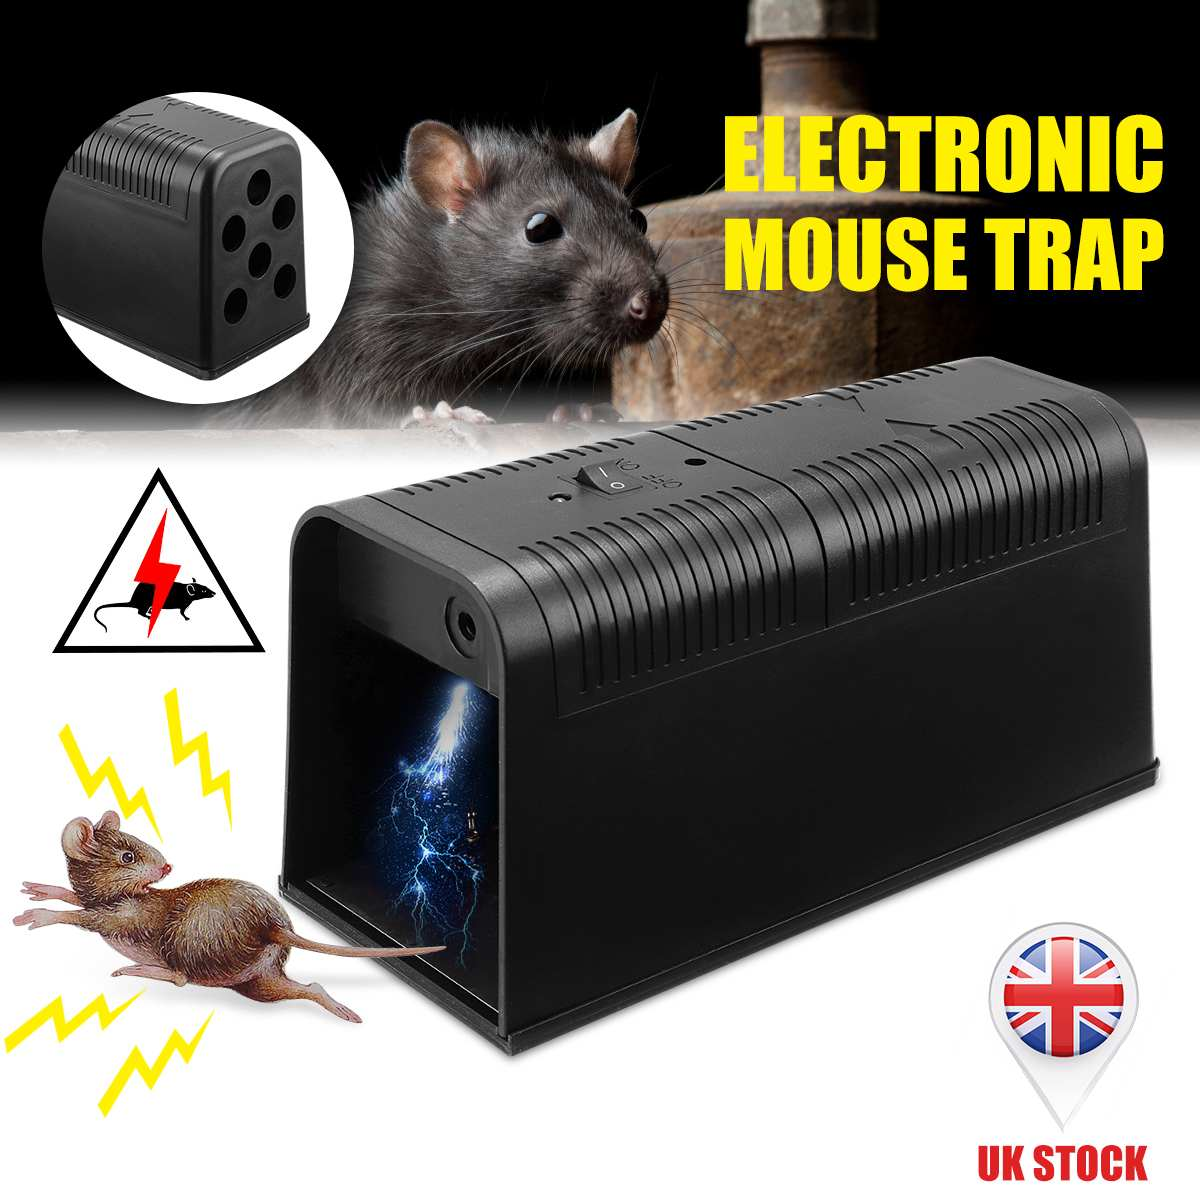 Electronic Mouse Killer Rat Zapper Exterminator Trap Humane Rodent Mousetrap Device DC6V With Protection Switch